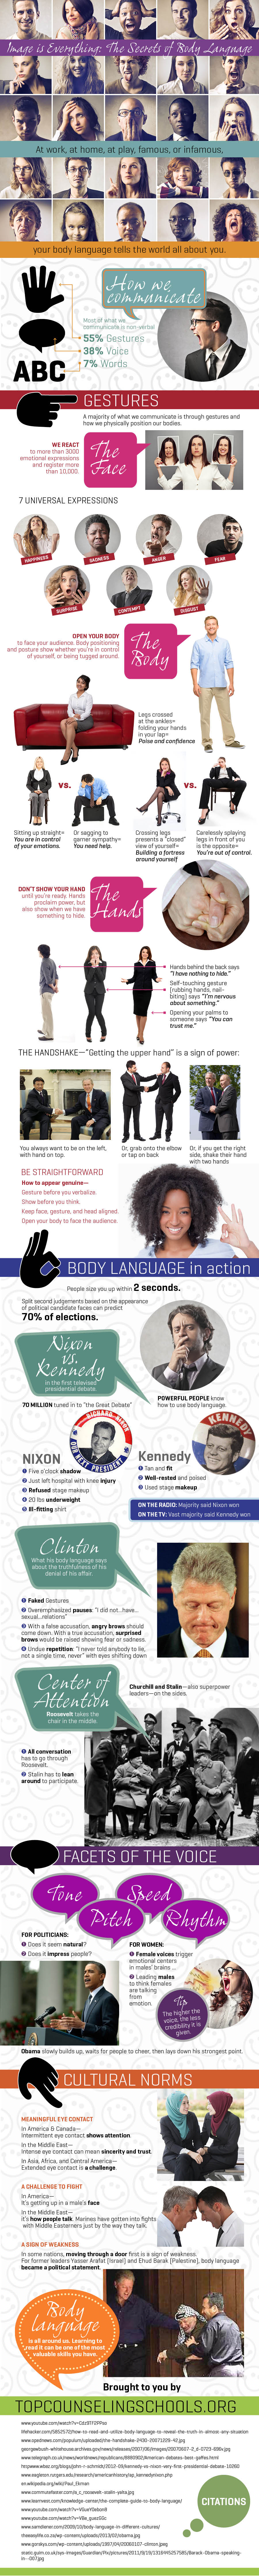 Why Body Language Matters In Life [INFOGRAPHIC]